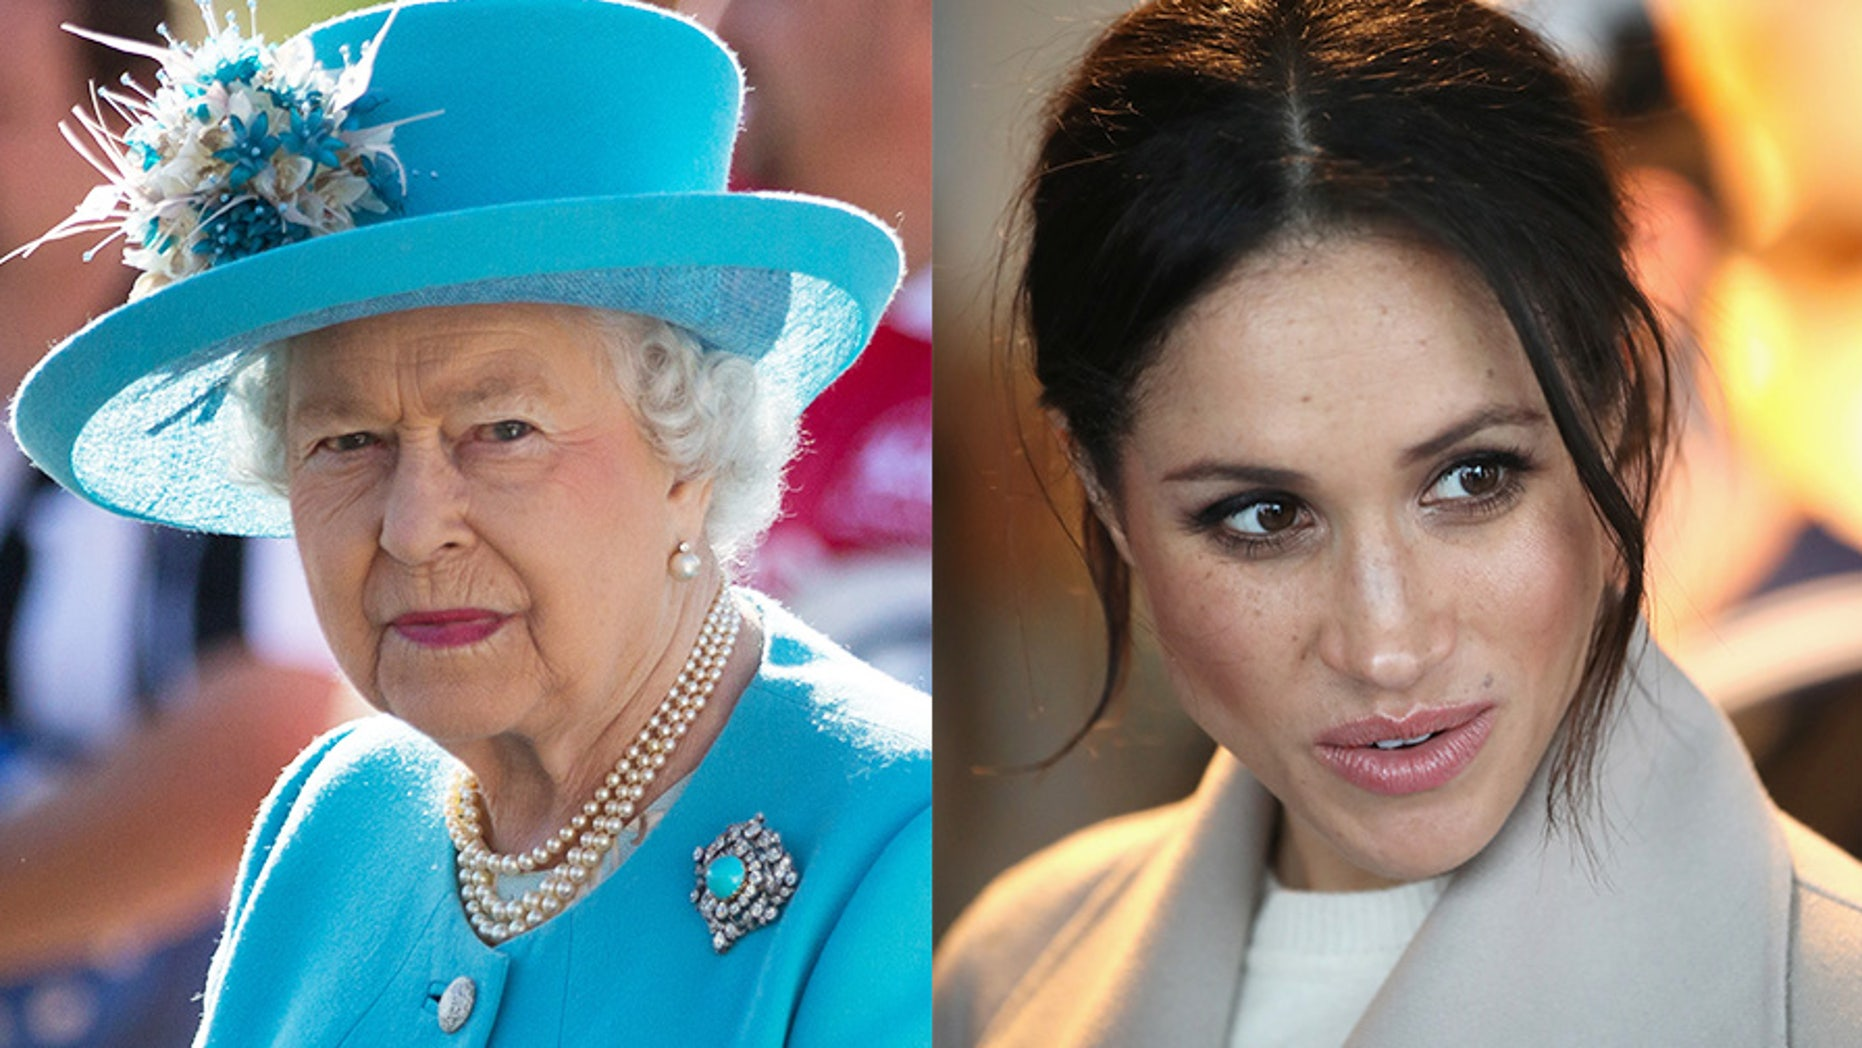 According to royal tradition, Queen Elizabeth II must approve the gowns of brides-to-be, like American actress Meghan Markle, who is engaged to her grandson Prince Harry.